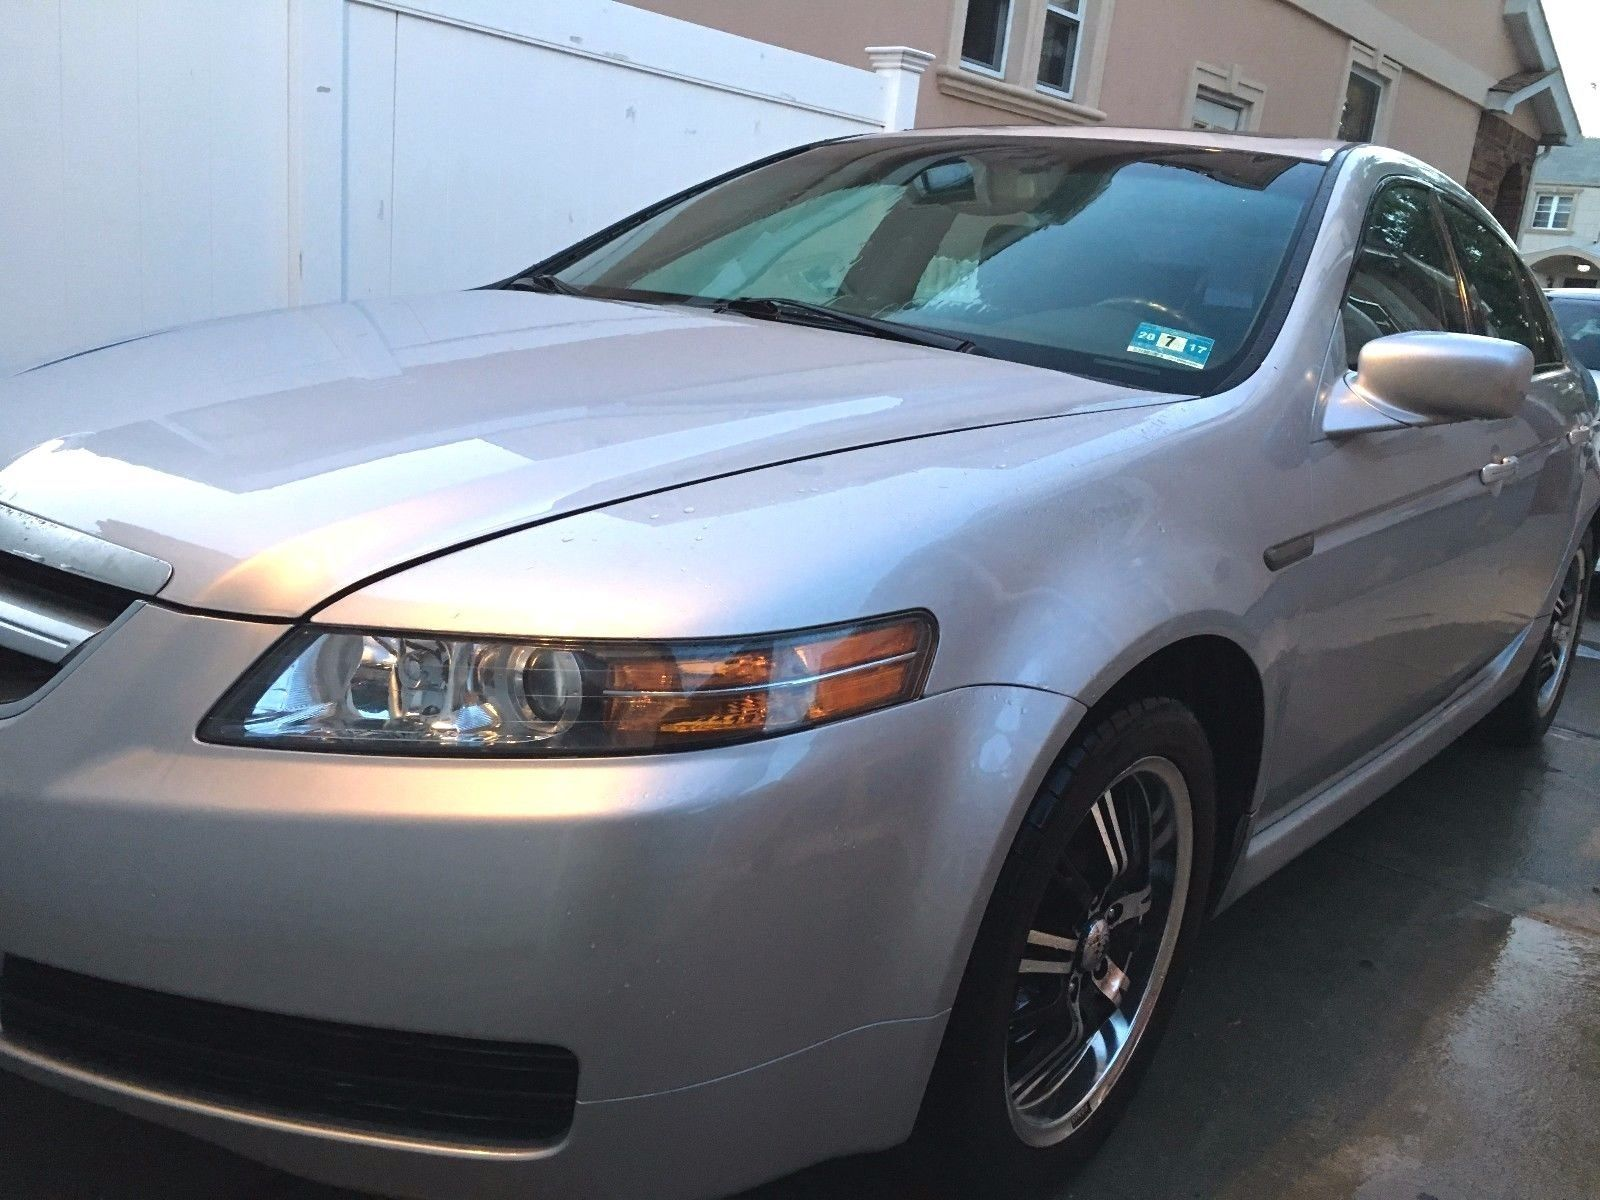 eBay: 2004 Acura TL Base Used 2004 Acura TL - Priced to sell. Sold